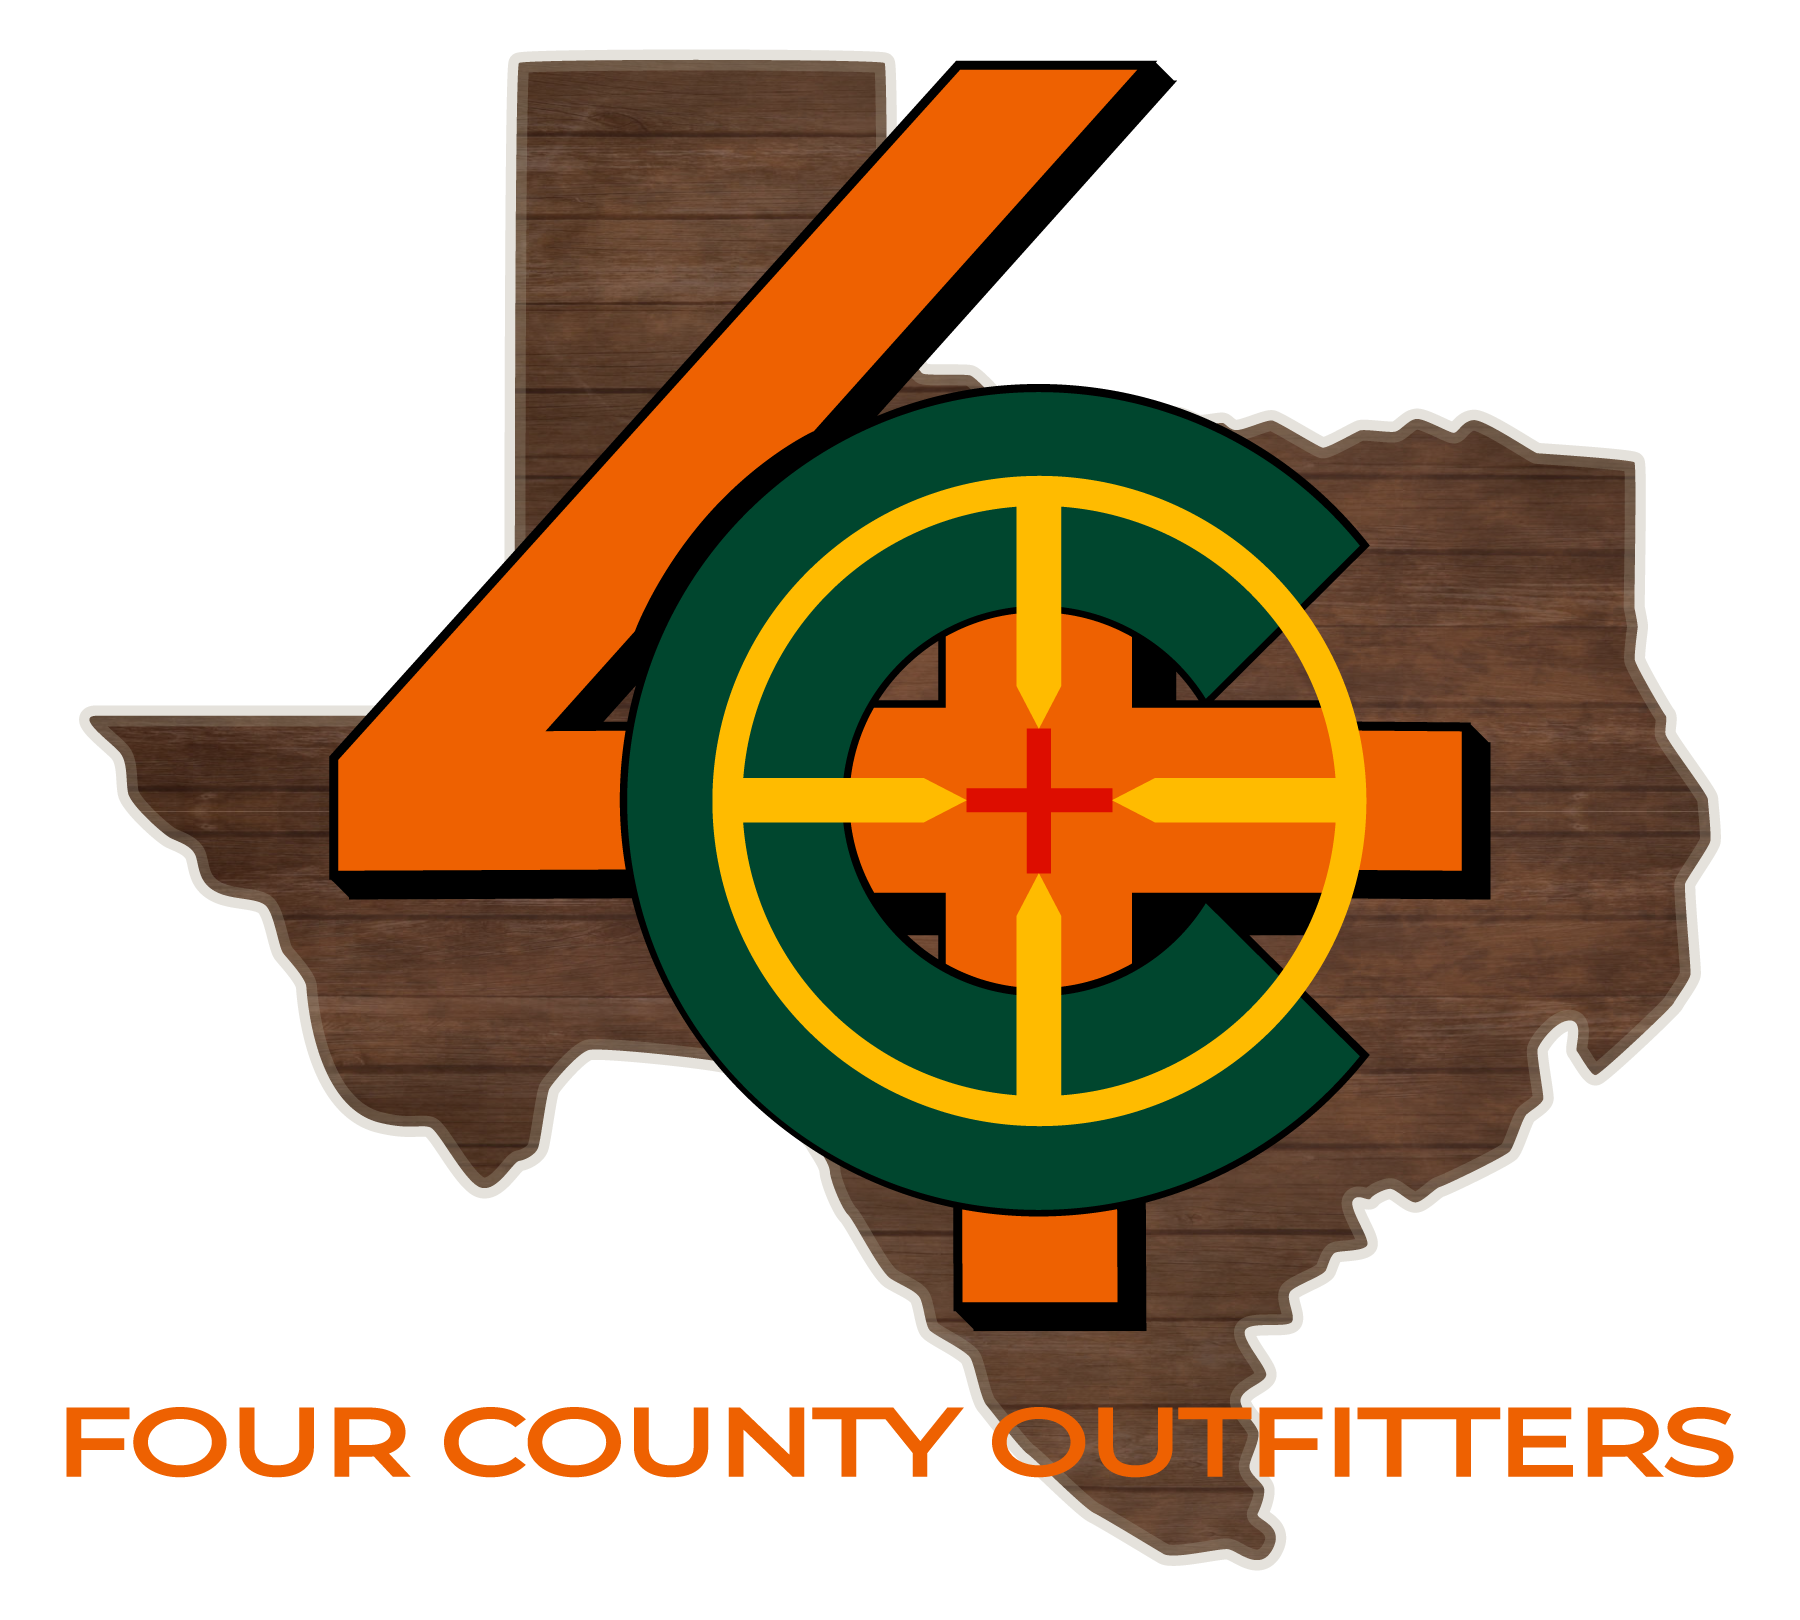 Turkey slam clipart svg free Hunts Four County Outfitters svg free